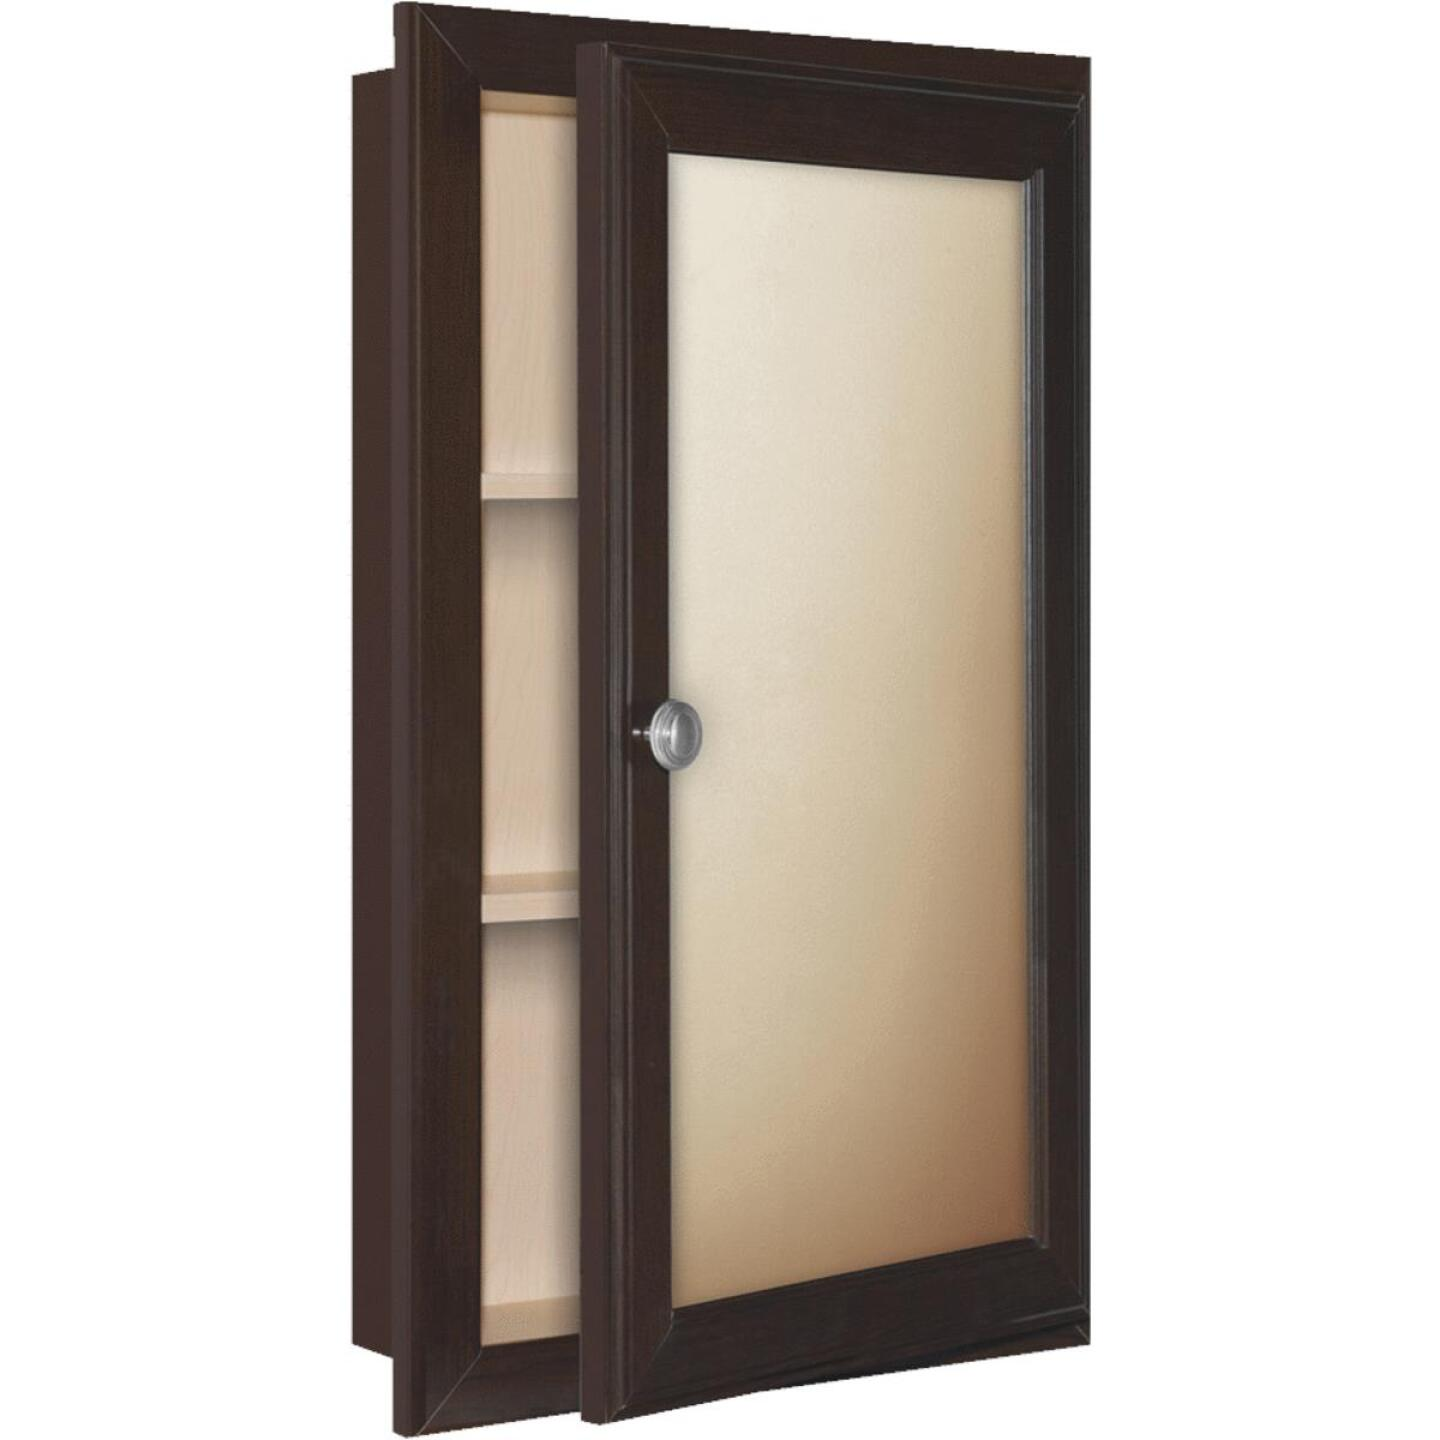 Continental Cabinets Java 15.75 In. W x 25.75 In. H x 4.75 In. D Single Mirror Surface/Recess Mount Framed Medicine Cabinet Image 1